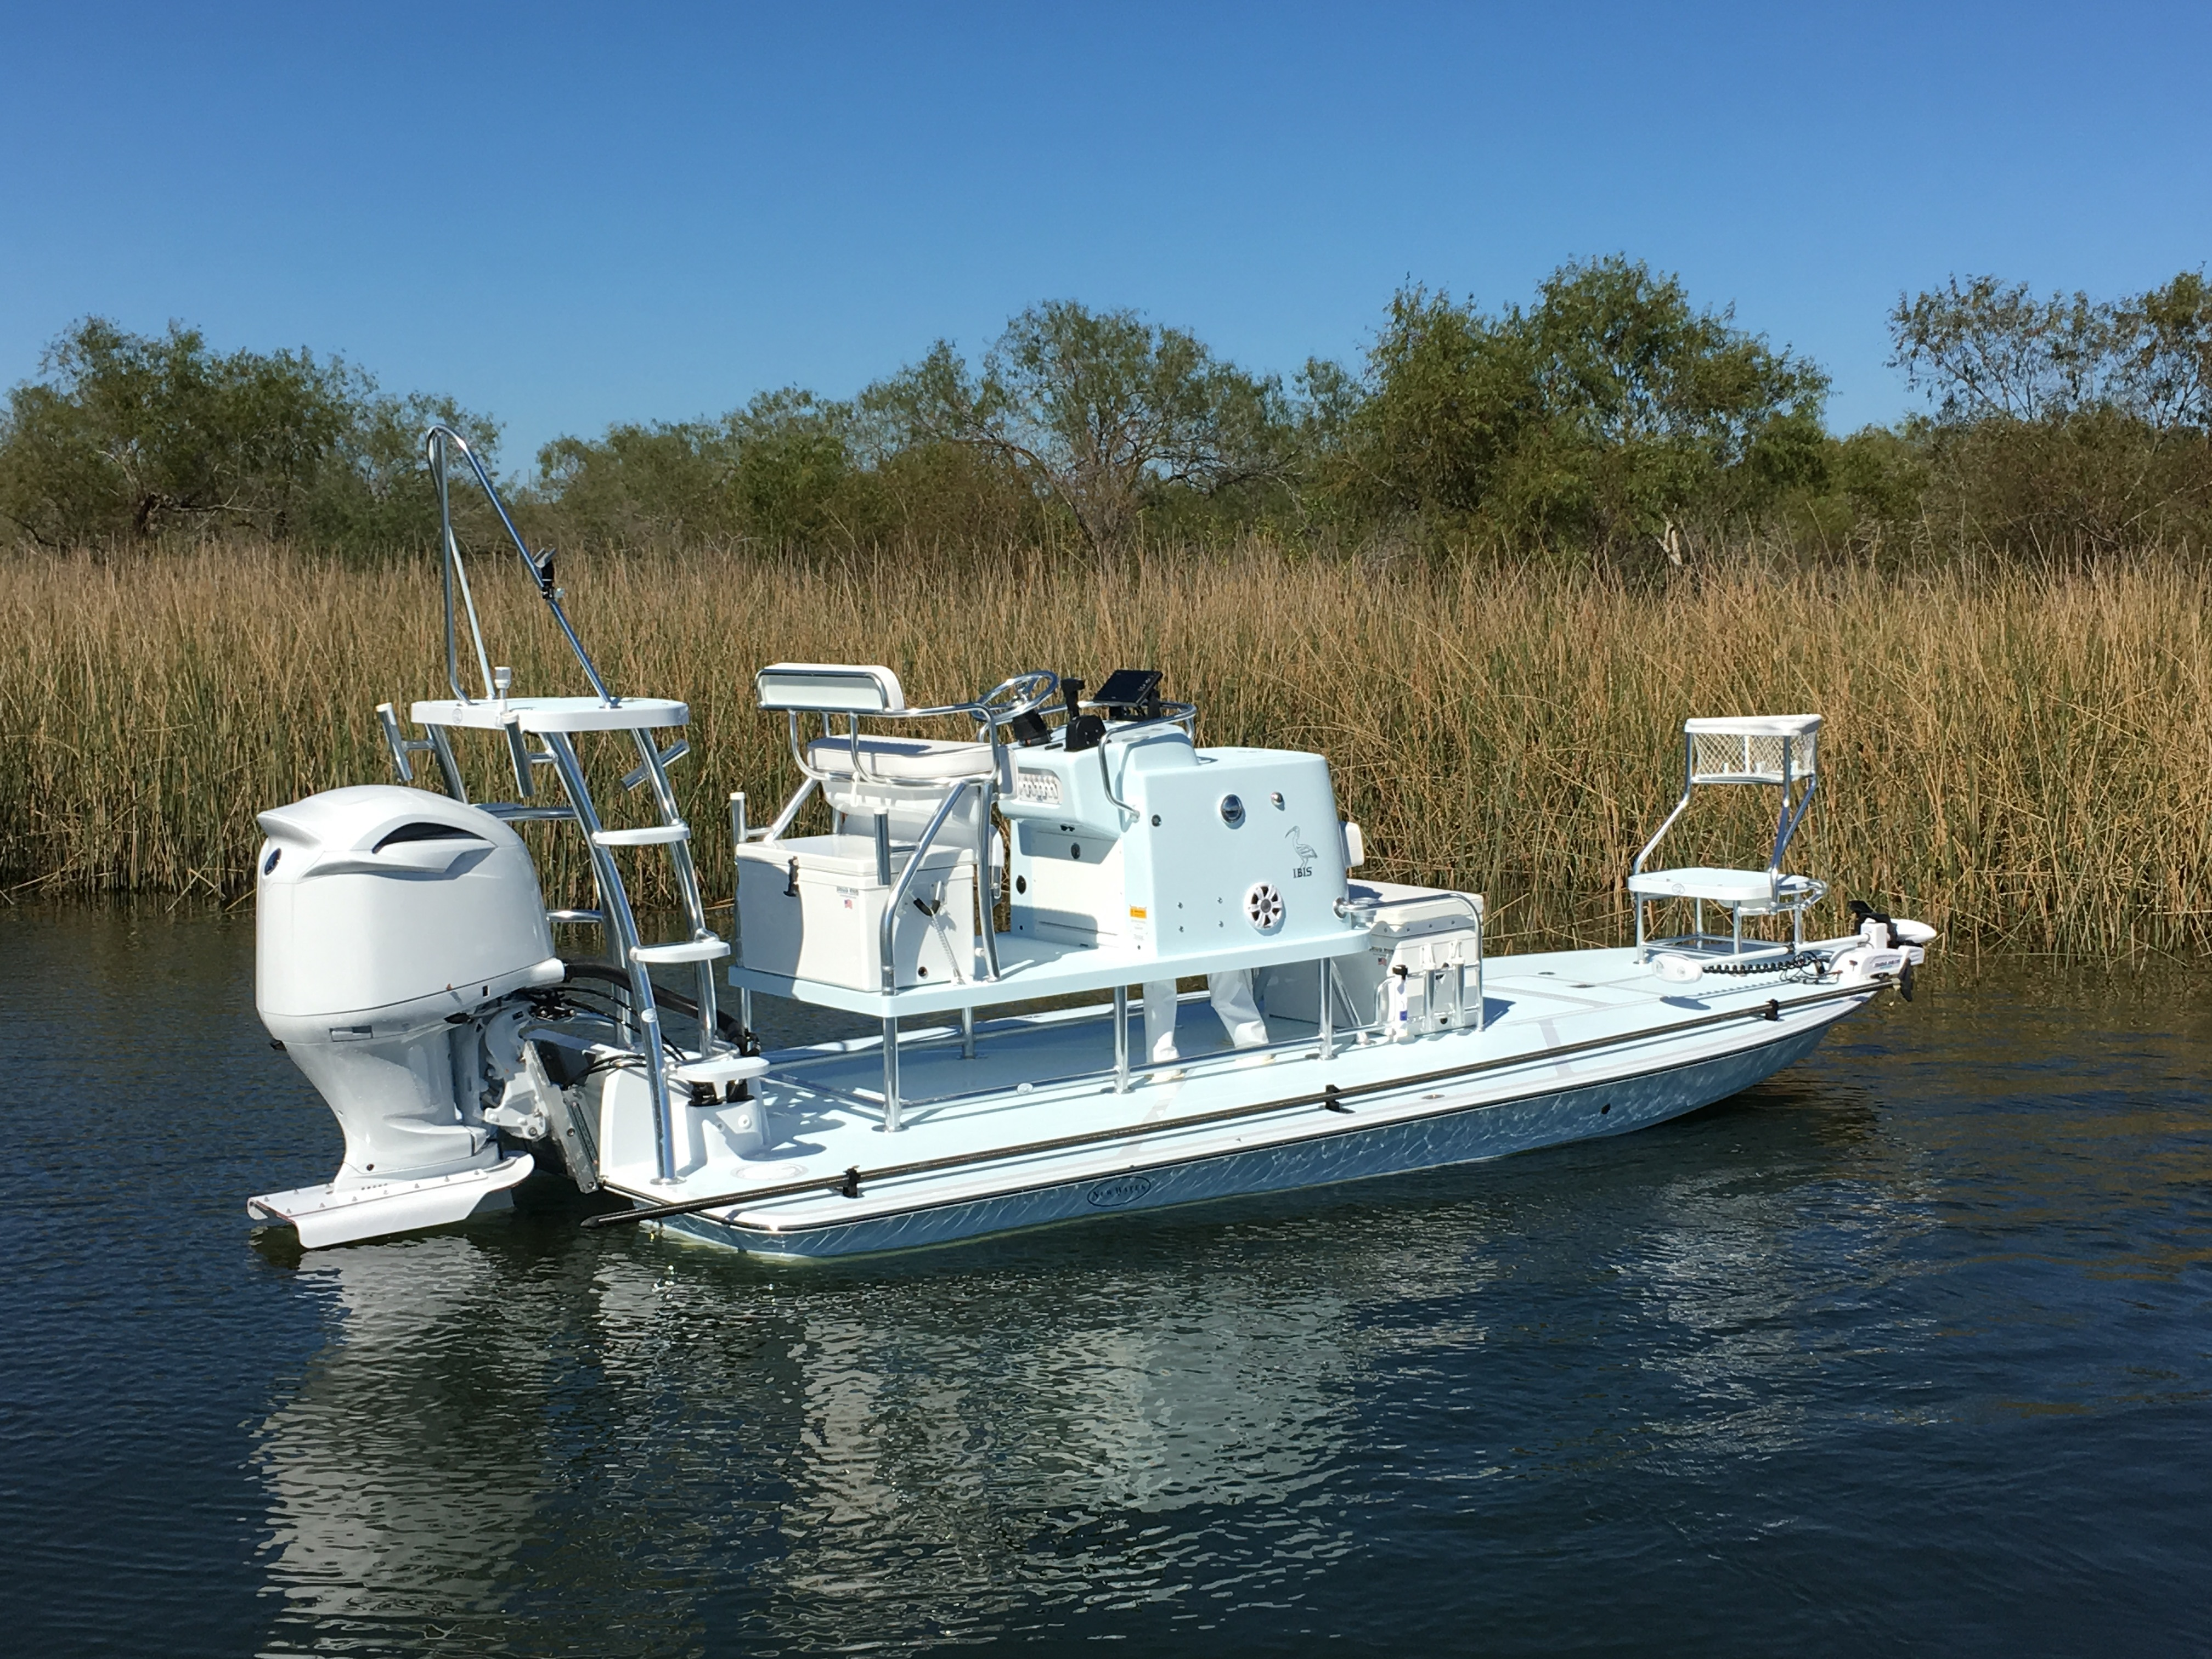 Shallow Water Boats >> Newwater Boatworks Maker Of The Finest Flyfishing Skiffs